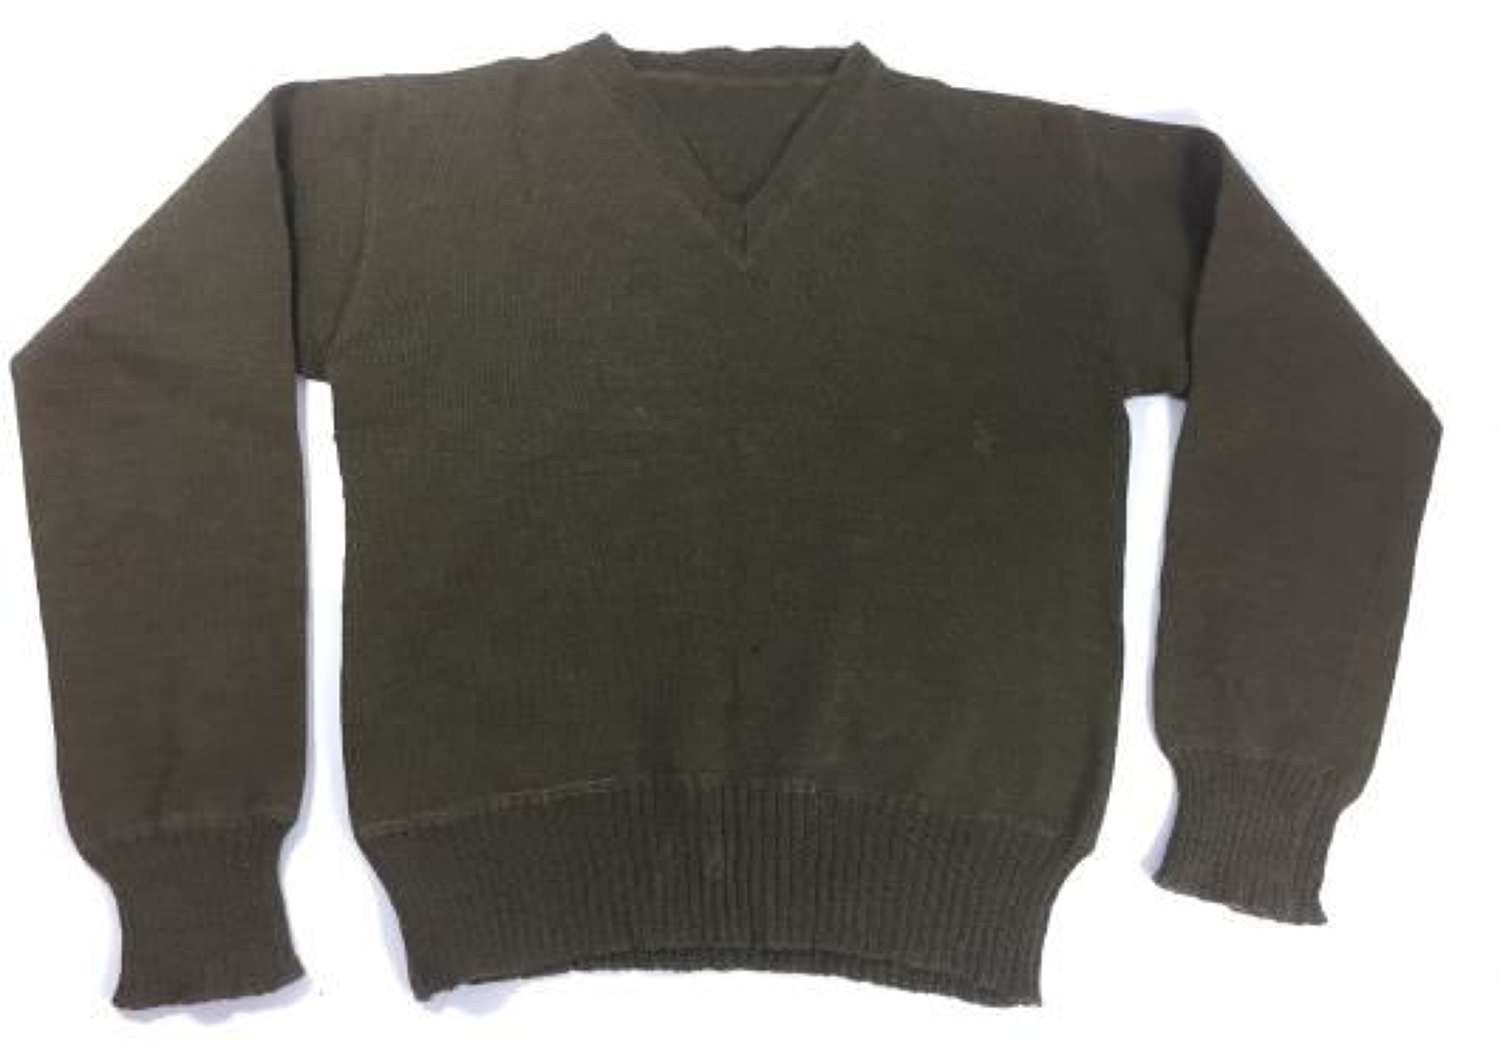 1949 Dated British Army Pullover Jumper - Size 3.